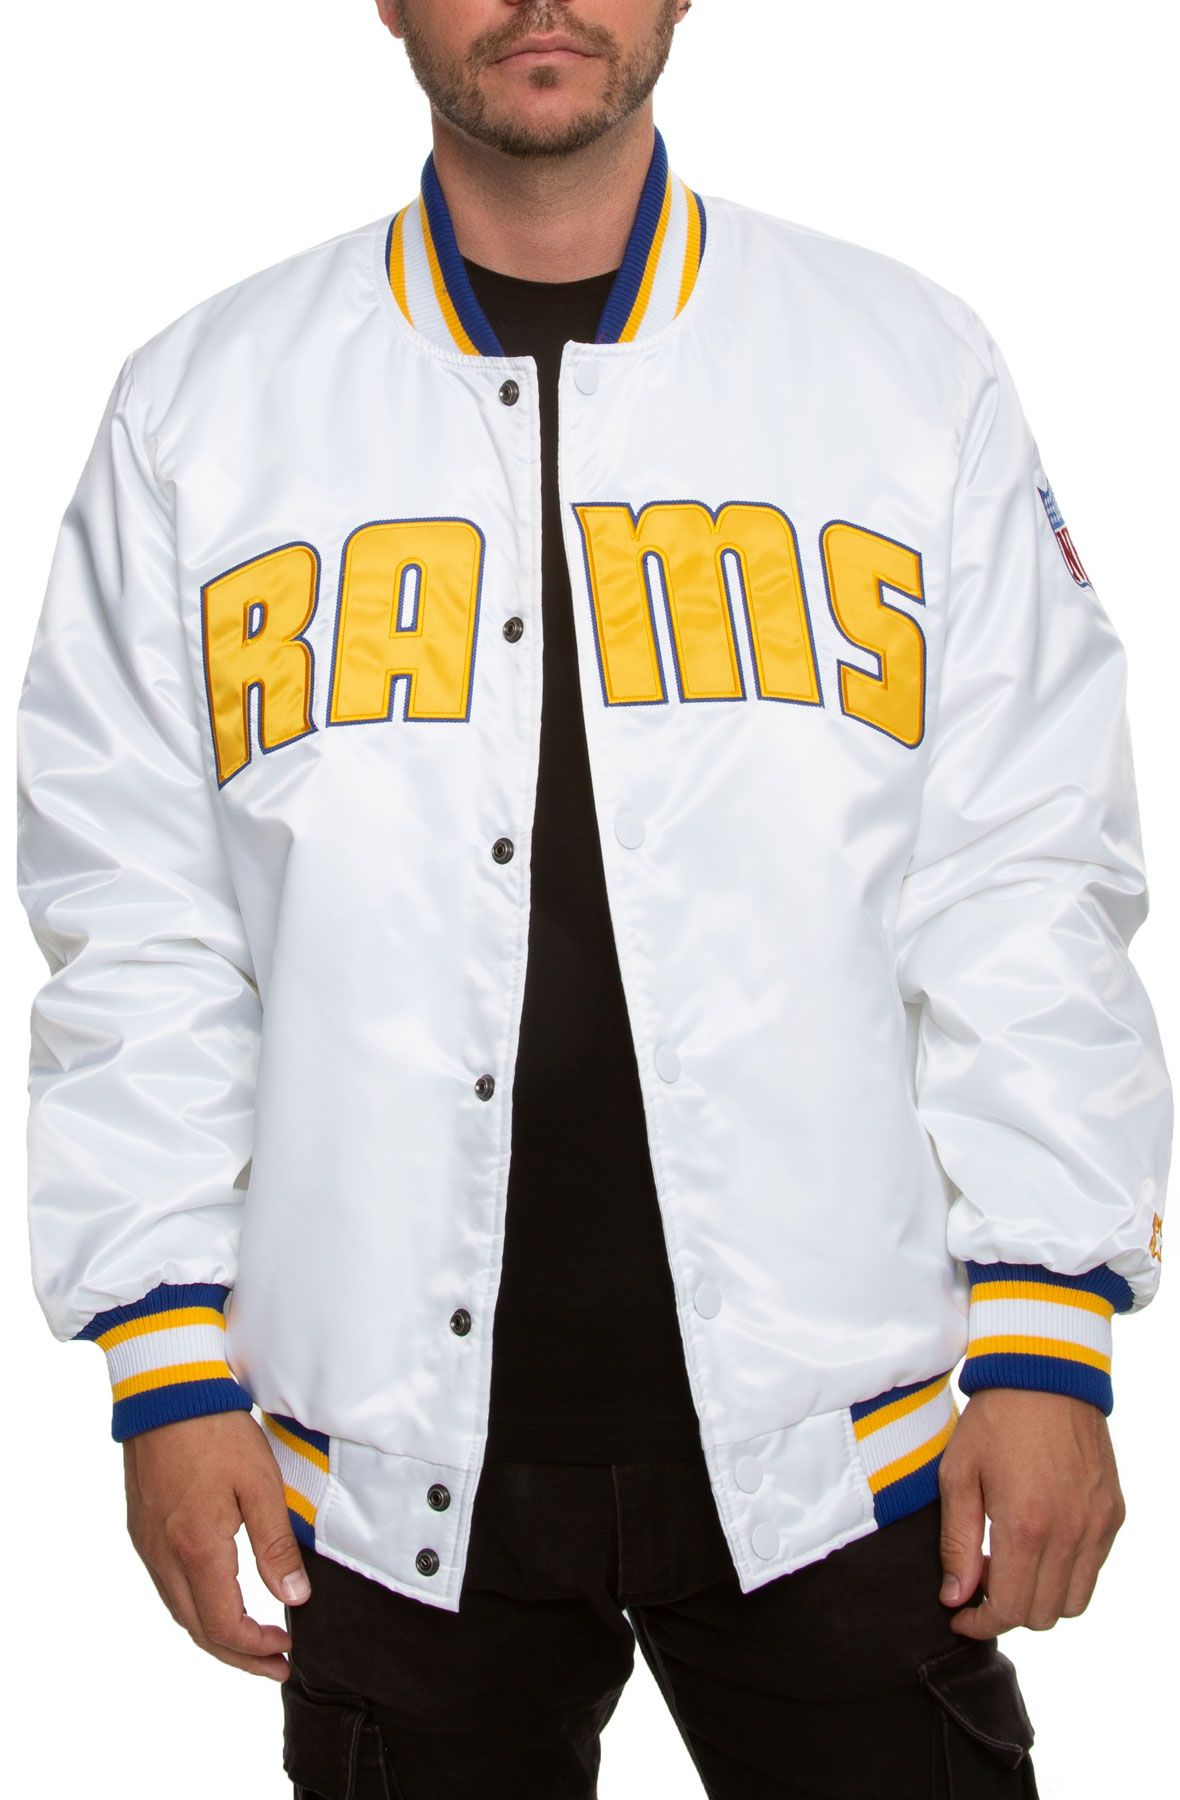 Starter Los Angeles Rams Jacket White Yellow Blue In 2020 Jackets Yellow White Los Angeles Rams